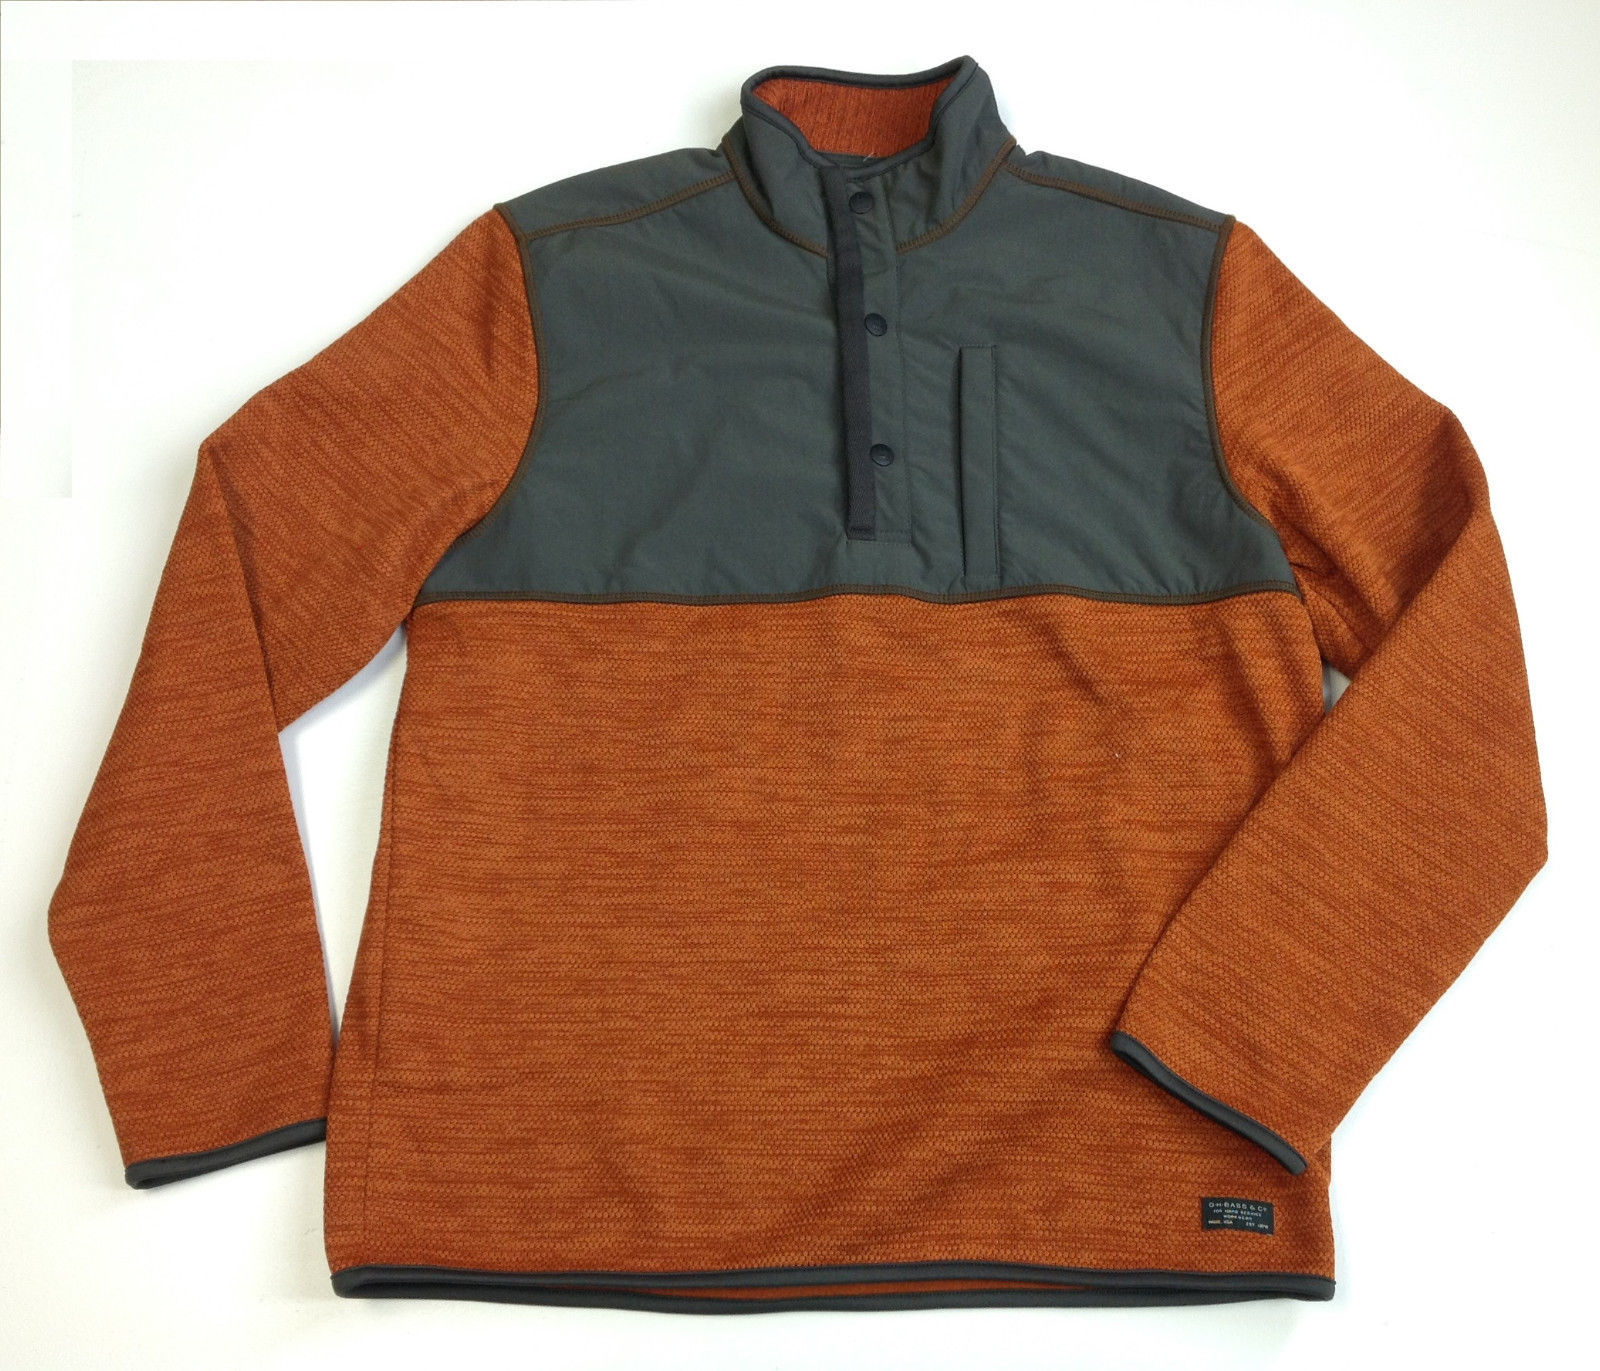 Primary image for G.H. Bass & Co. Men's Mixed Media Pullover, Orange, Size L